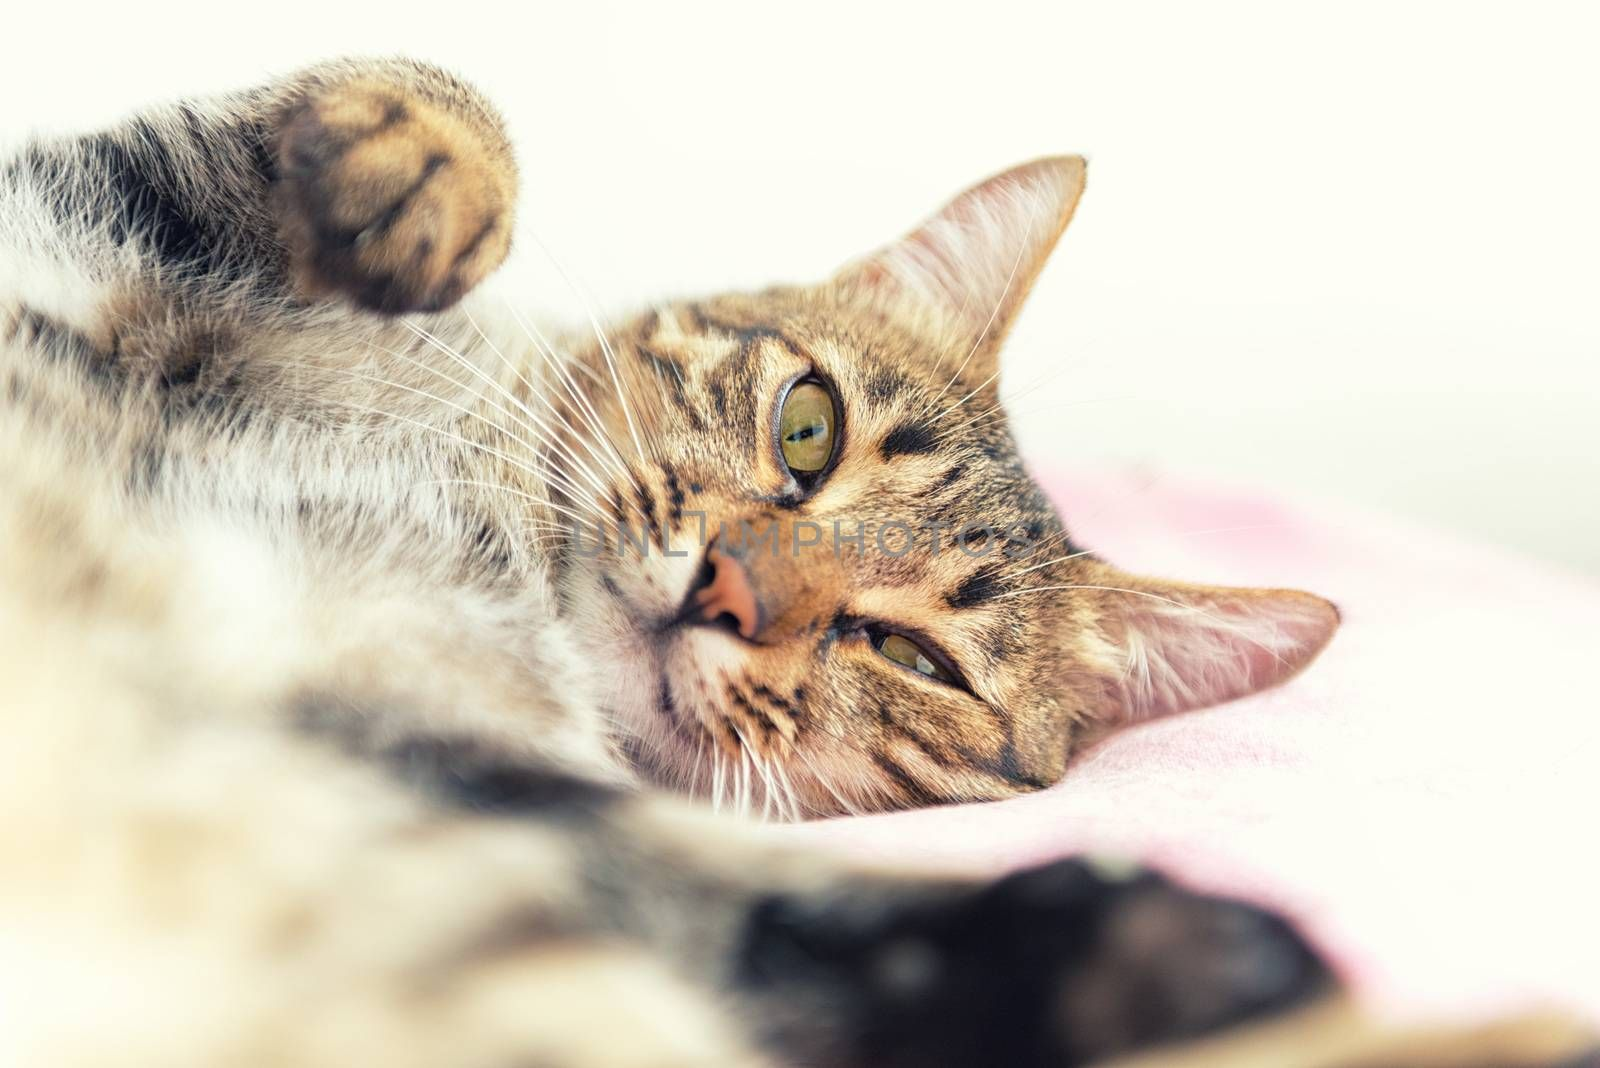 The tabby cat relaxing on the bed